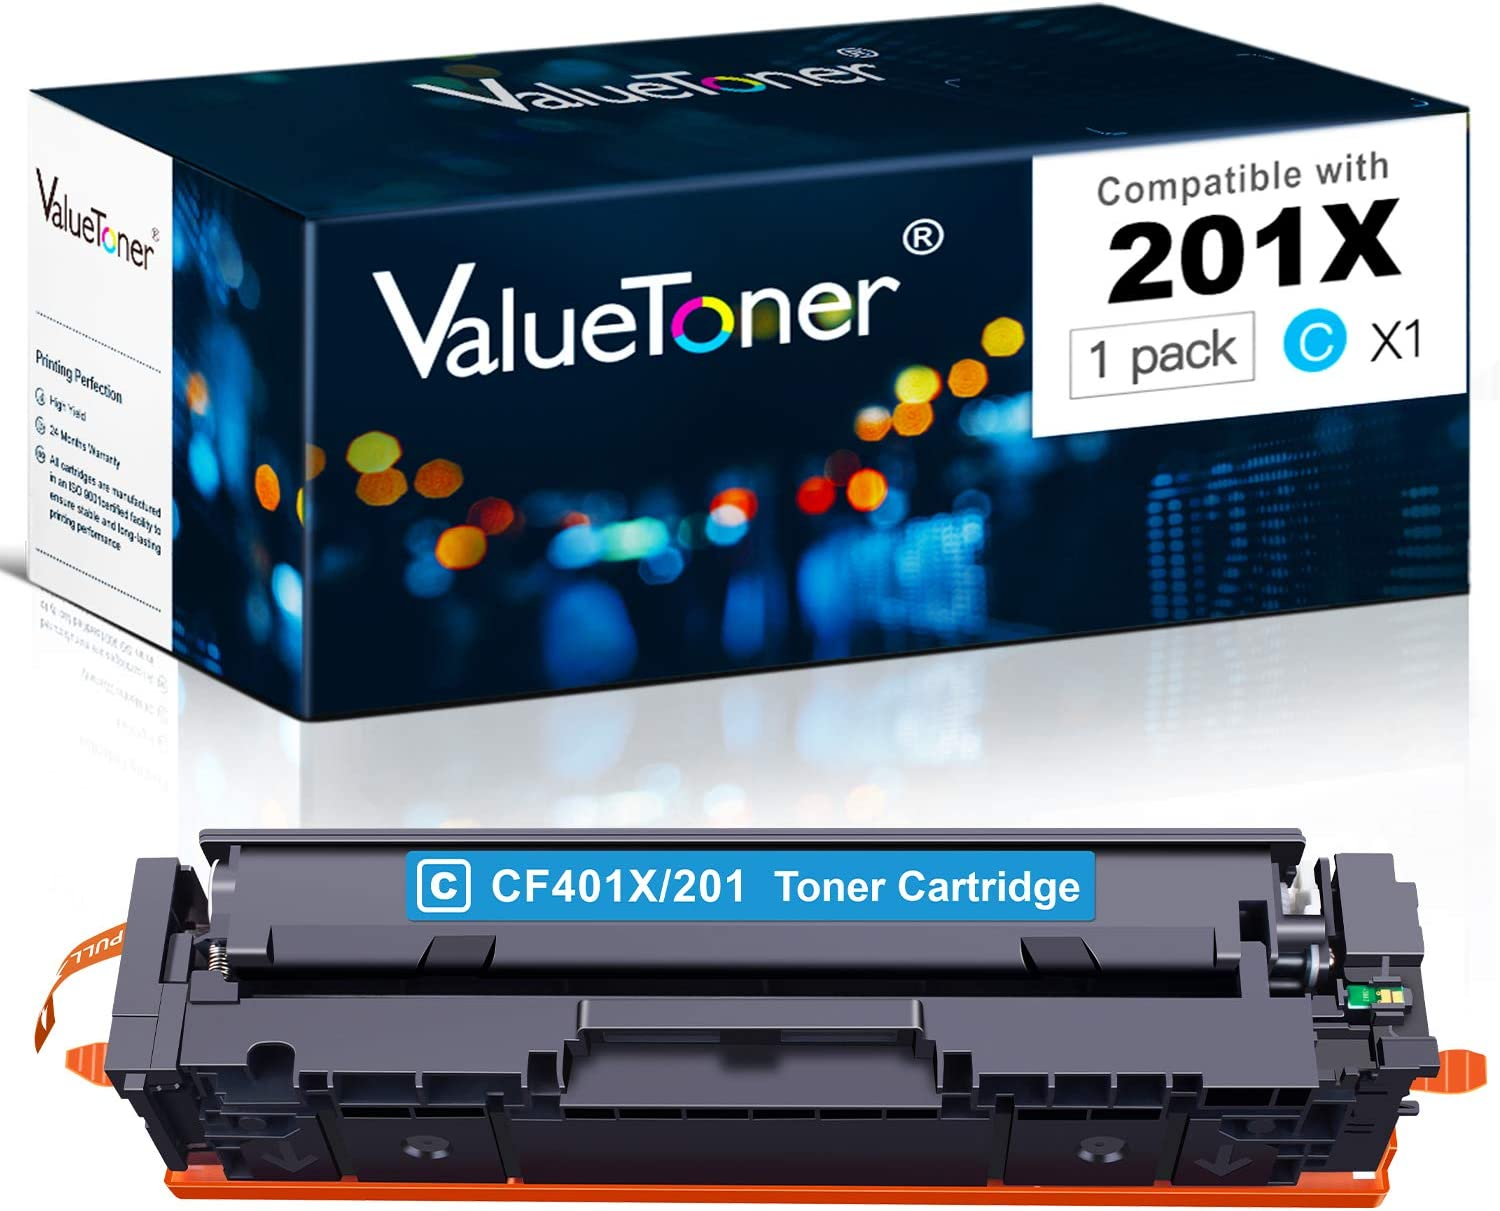 Valuetoner Compatible Toner Cartridge Replacement for HP 201A 201X for Color Laserjet Pro MFP M277dw M252dw M277n M277c6 M252n M252 M277 Printer (Cyan)